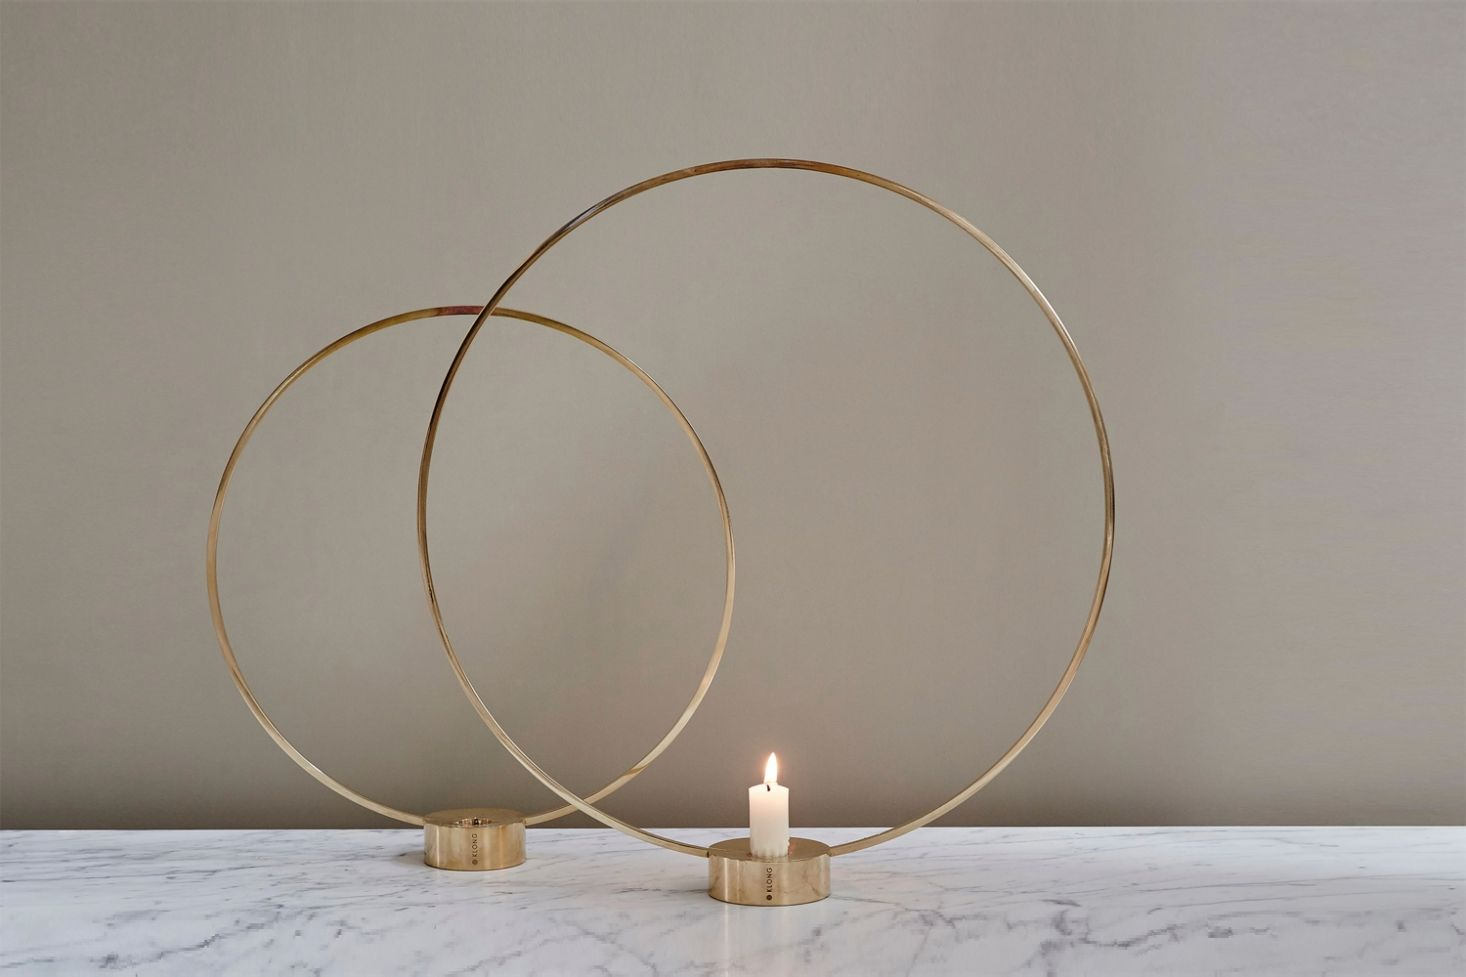 5 Favorites Scandi Circular Candleholders In Brass In 2020 Design Candle Holders Candle Decor Candle Holders